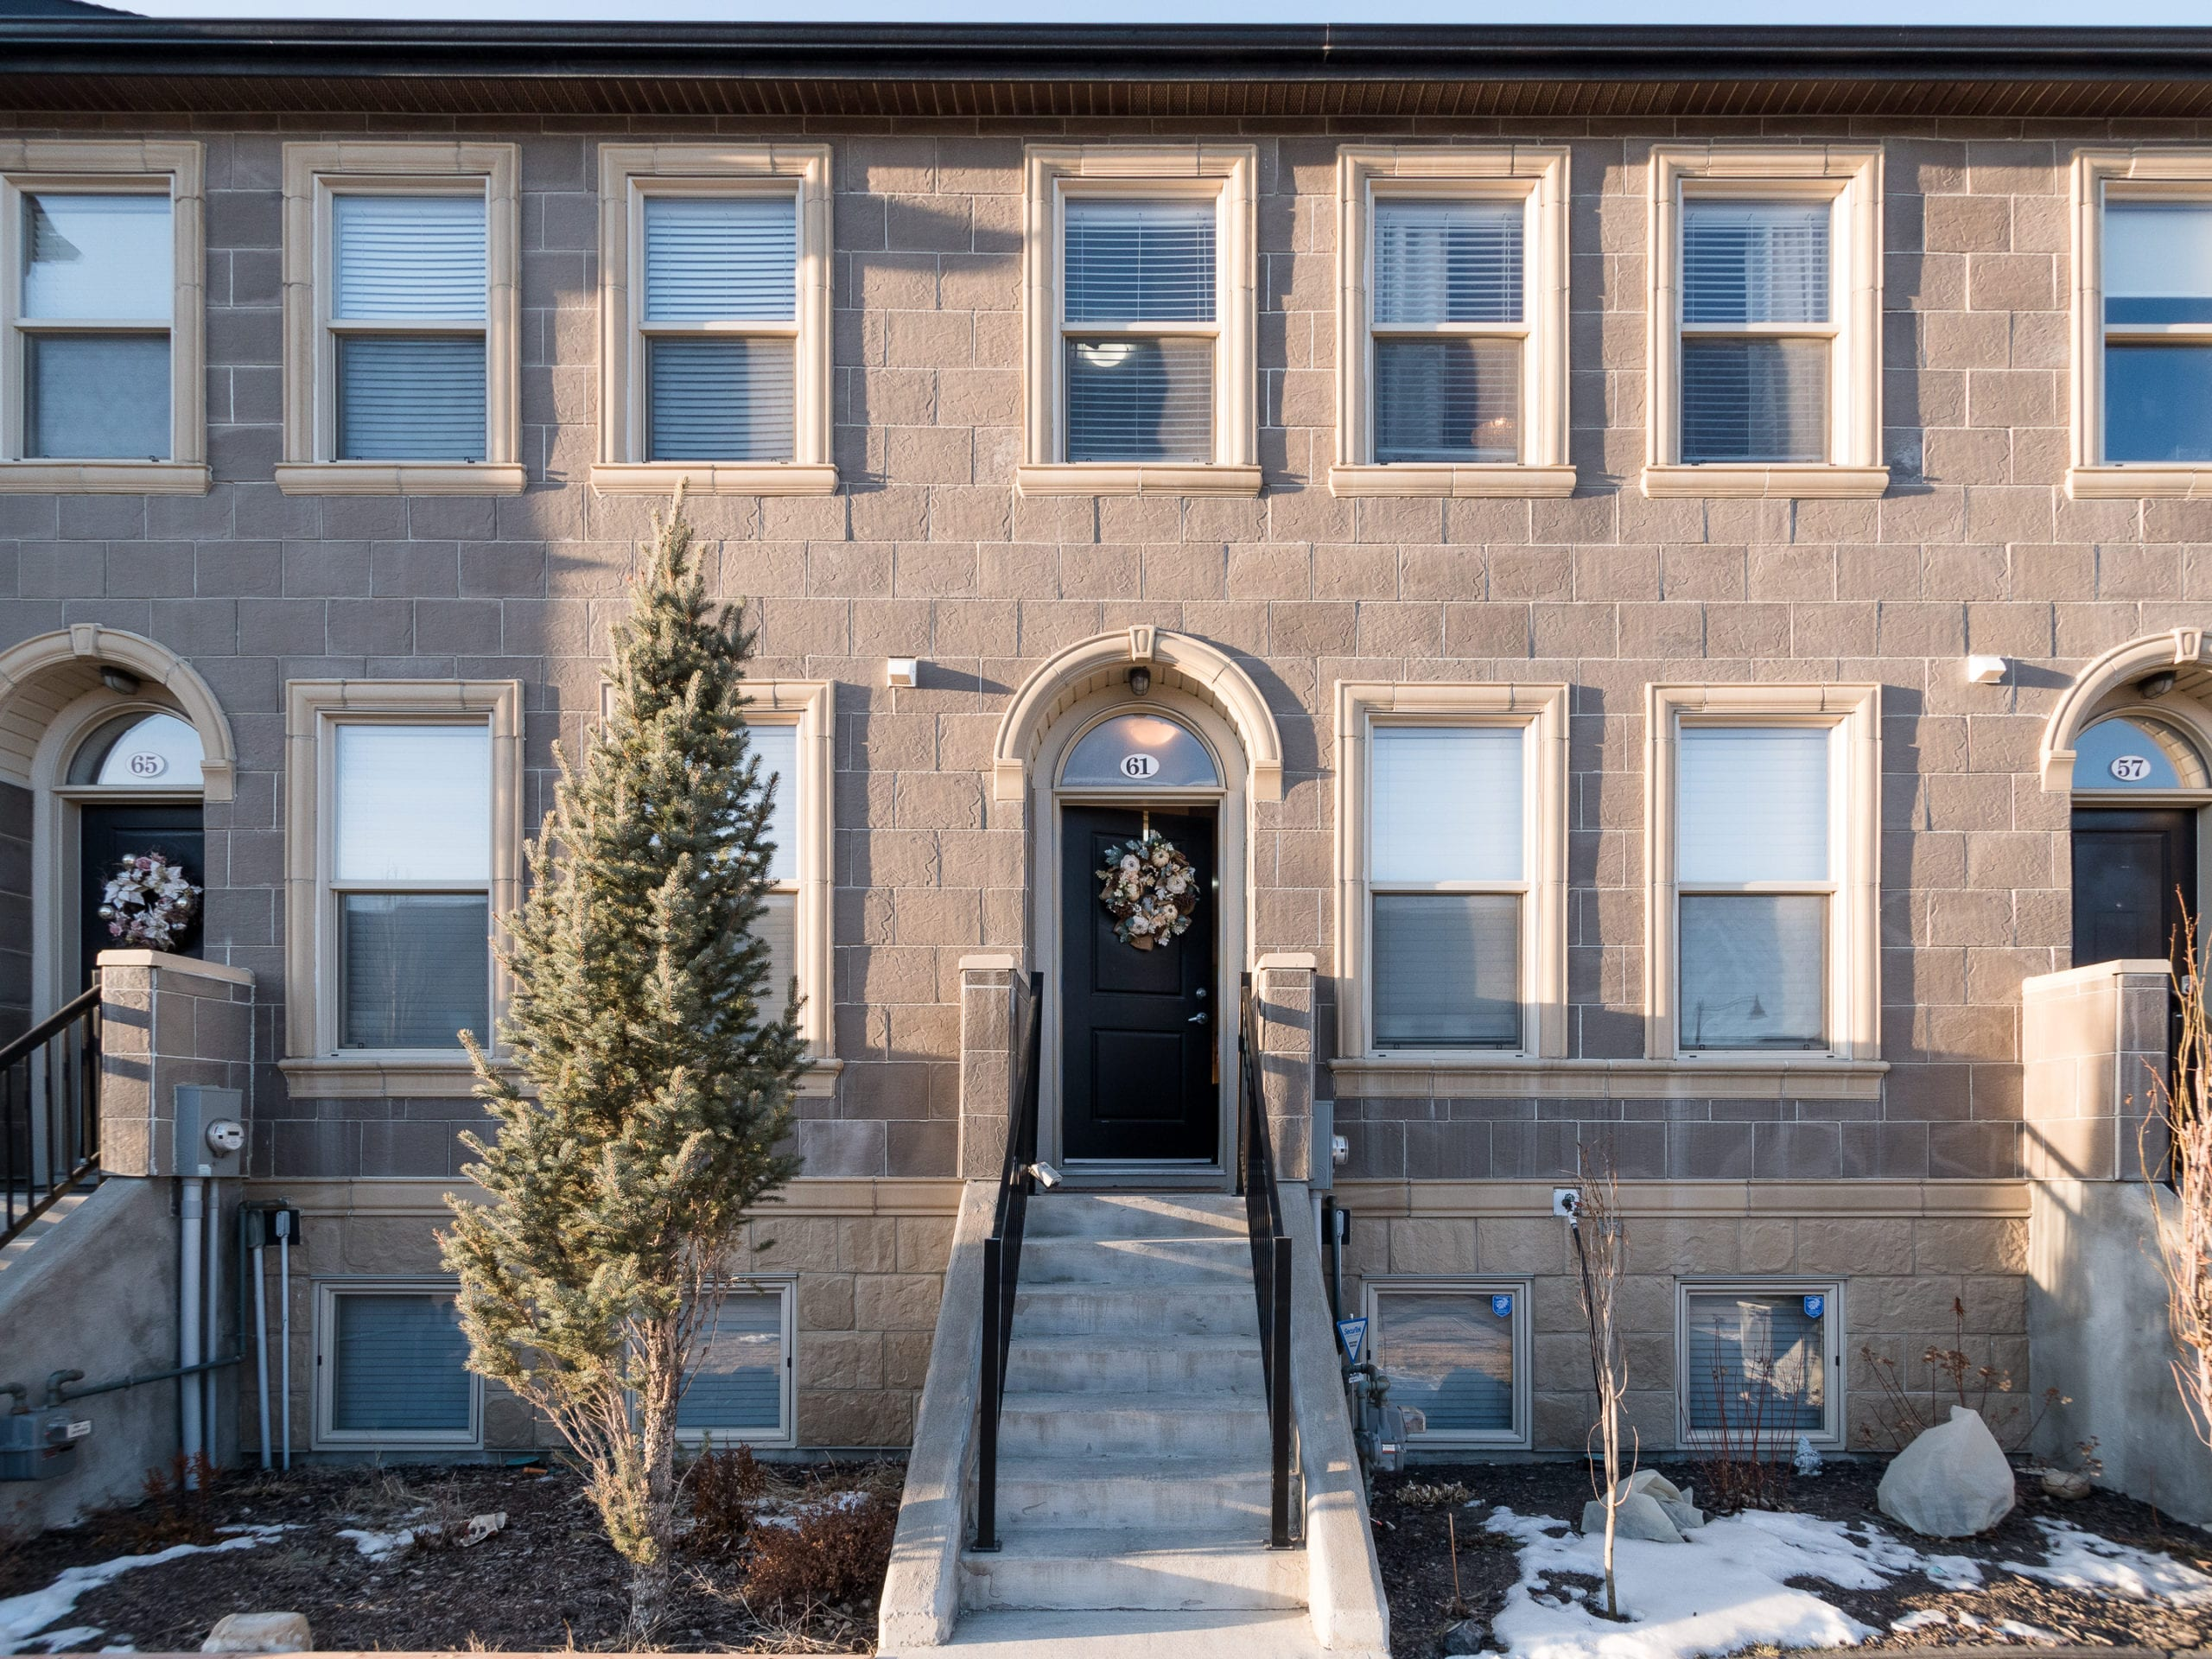 Hello Gorgeous - 61 Sage Meadows Terrace NW, Calgary AB - Tara Molina Real Estate (4 of 41)